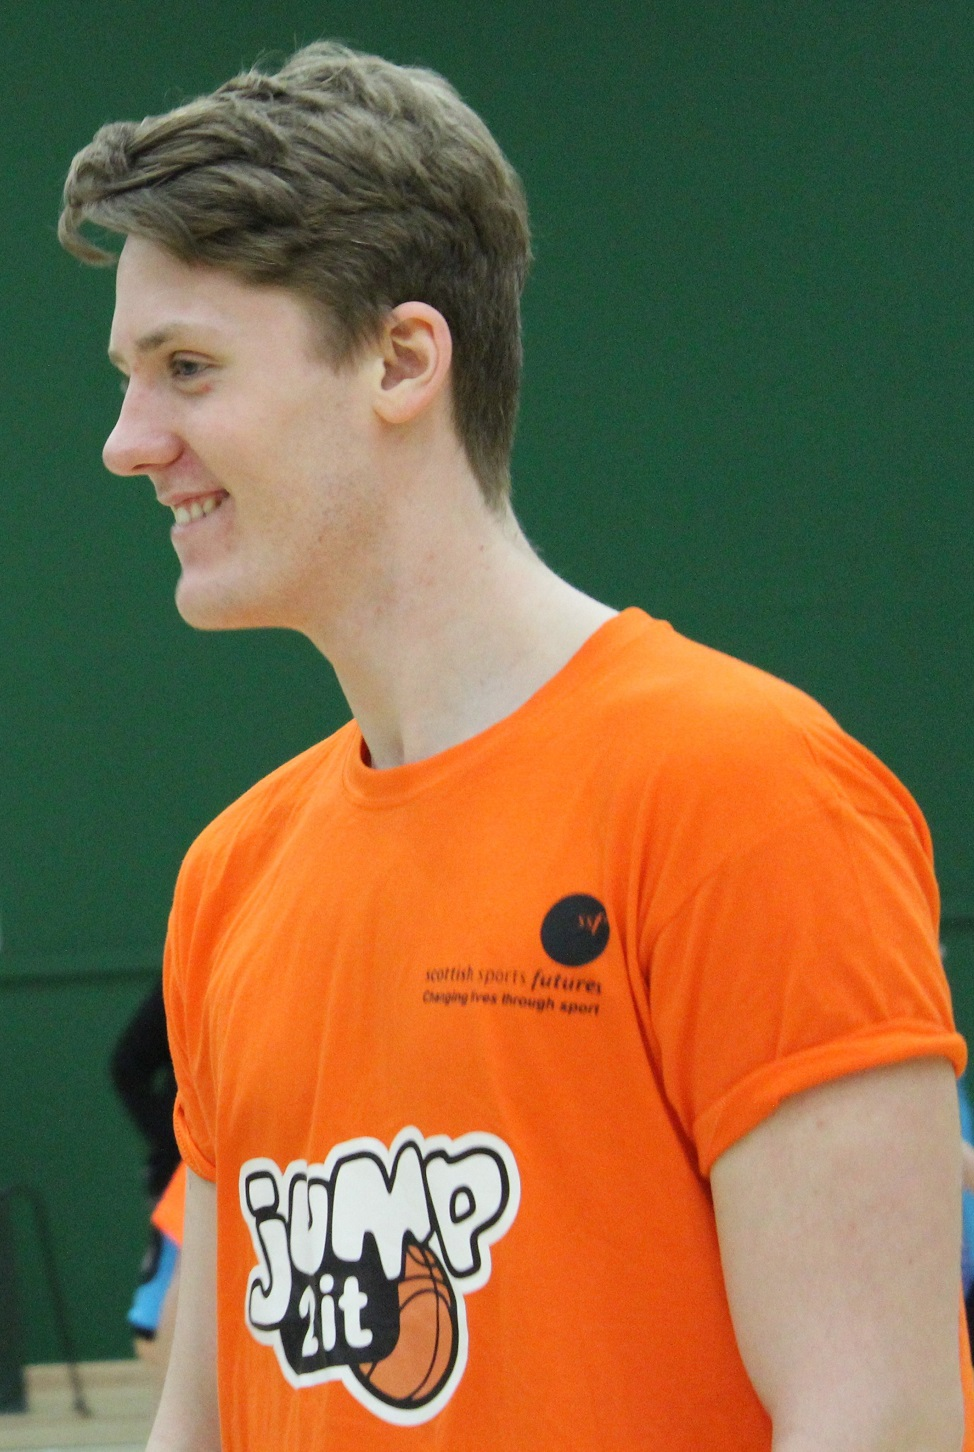 Craig McIntyre from Jump2it Basketball programme in North Ayrshire